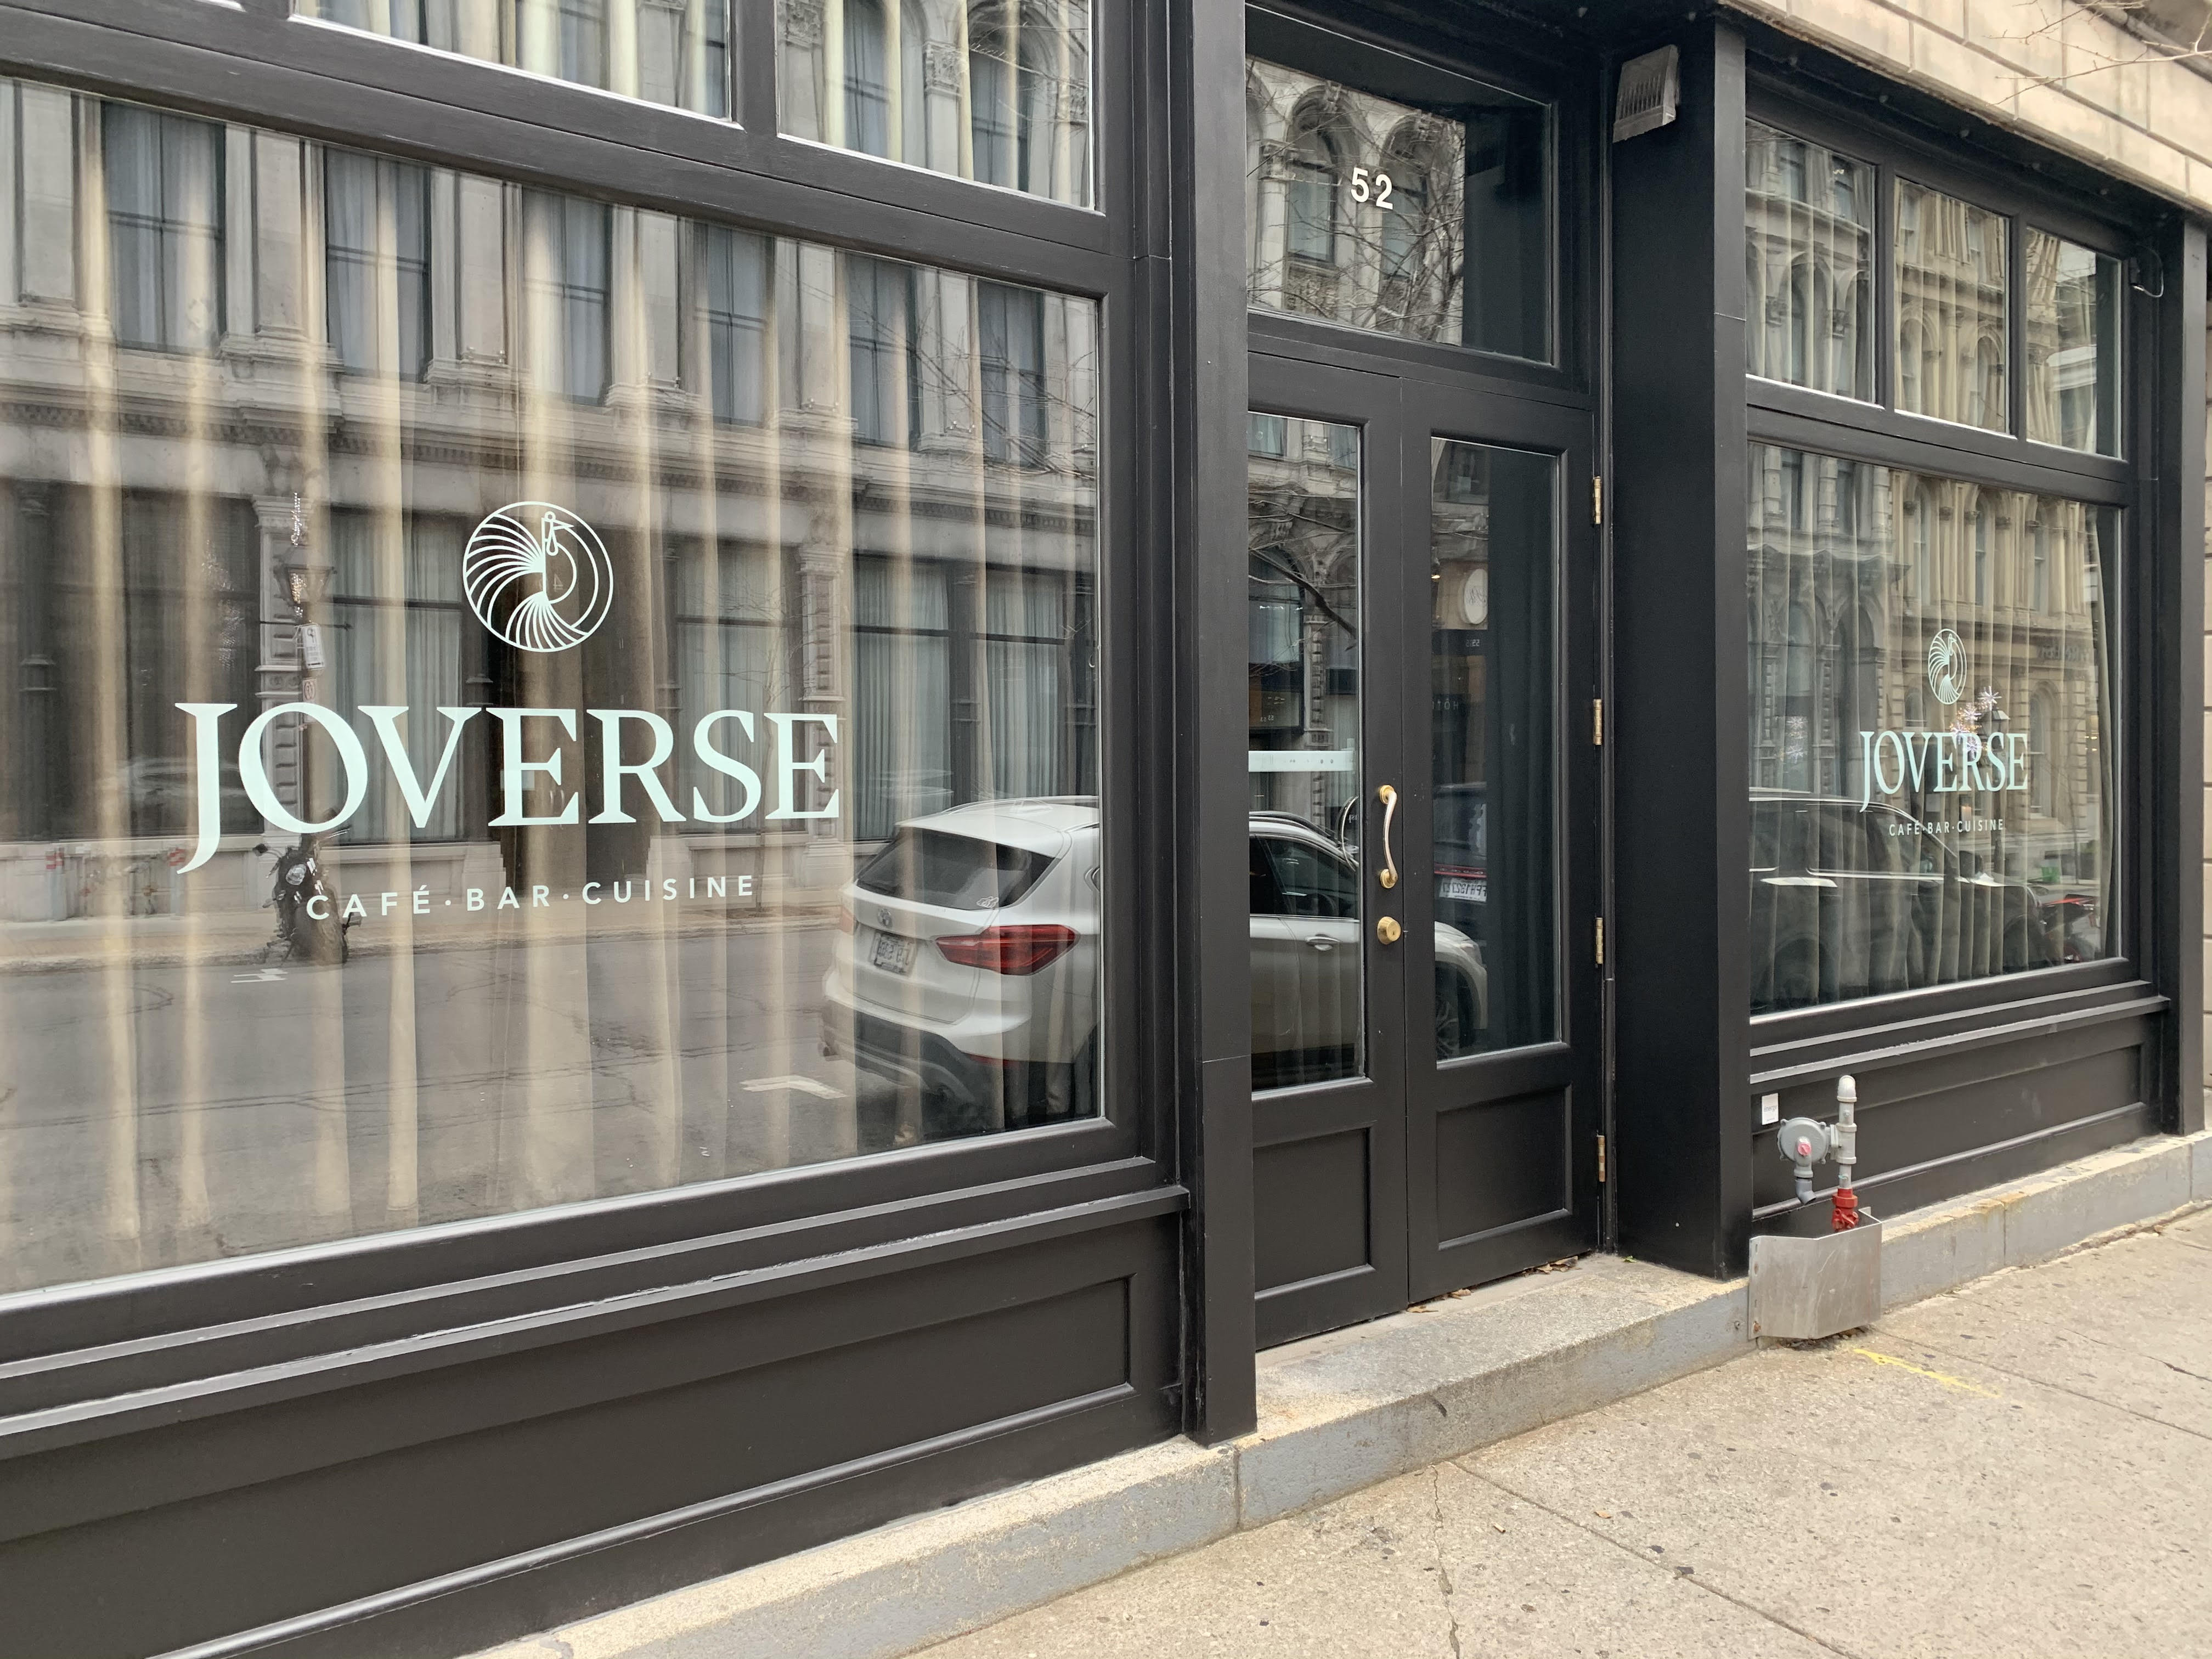 """front of restaurant with word """"Joverse"""" on window"""